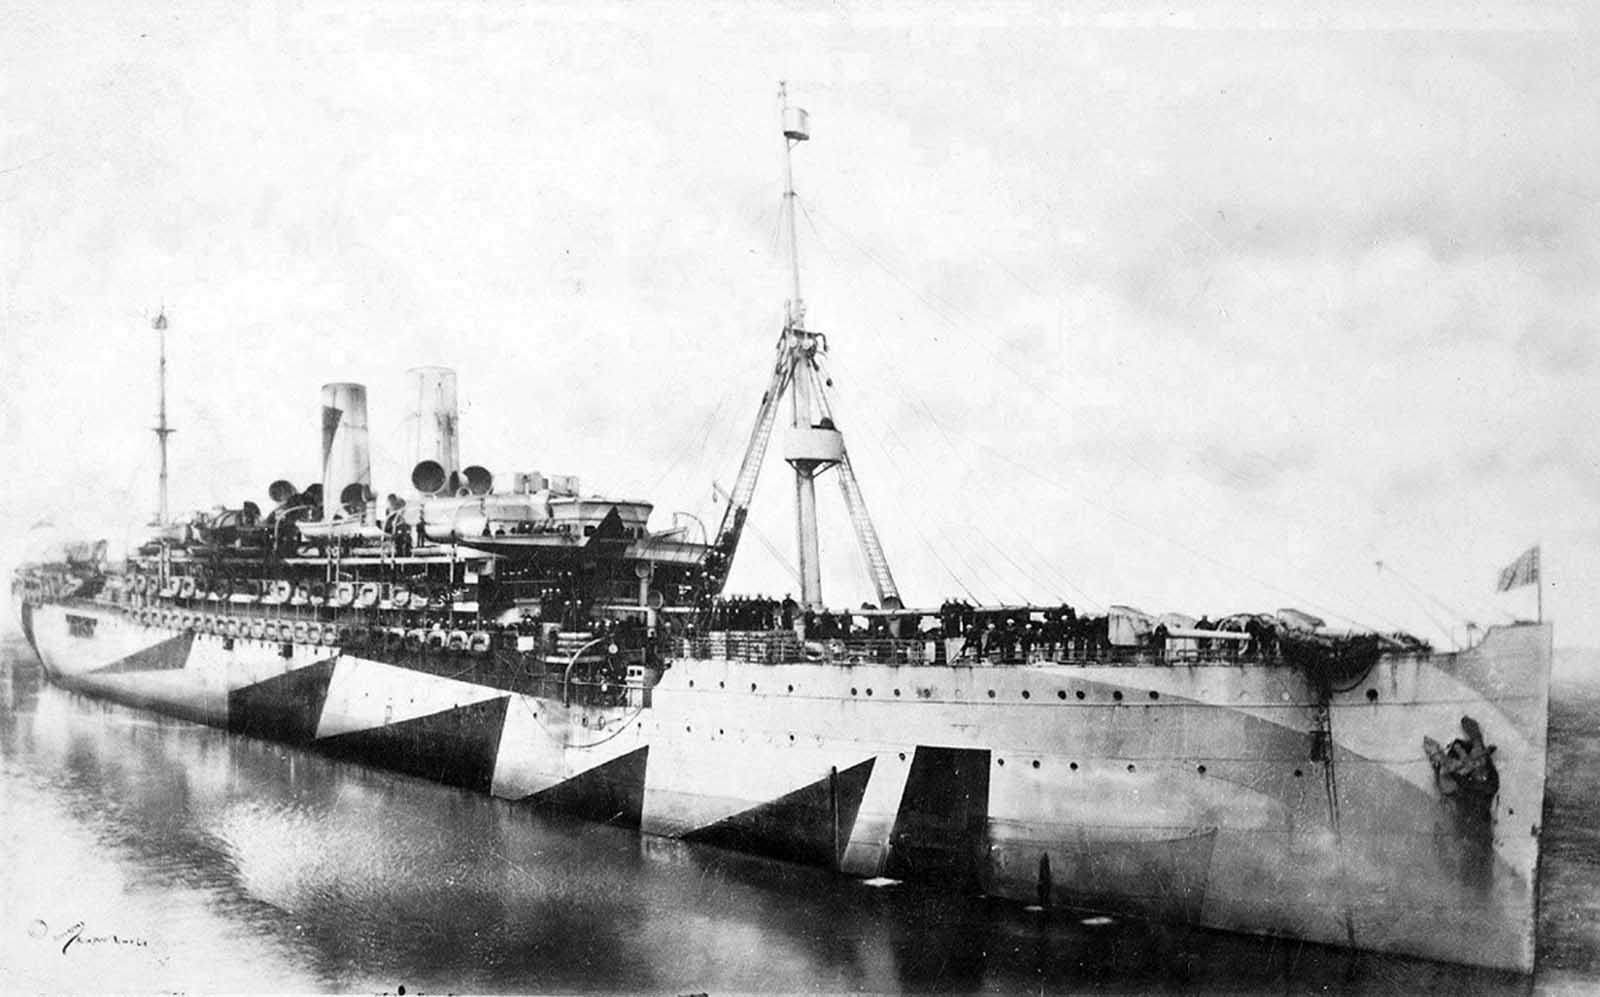 The USS Pocahontas, a U.S. Navy transport ship, photographed in Dazzle camouflage, in 1918. The ship was originally a German passenger liner named the Prinzess Irene. She was docked in New York at the start of the war, and seized by the U.S. when it entered the conflict in April 1917, and re-christened Pocahontas.